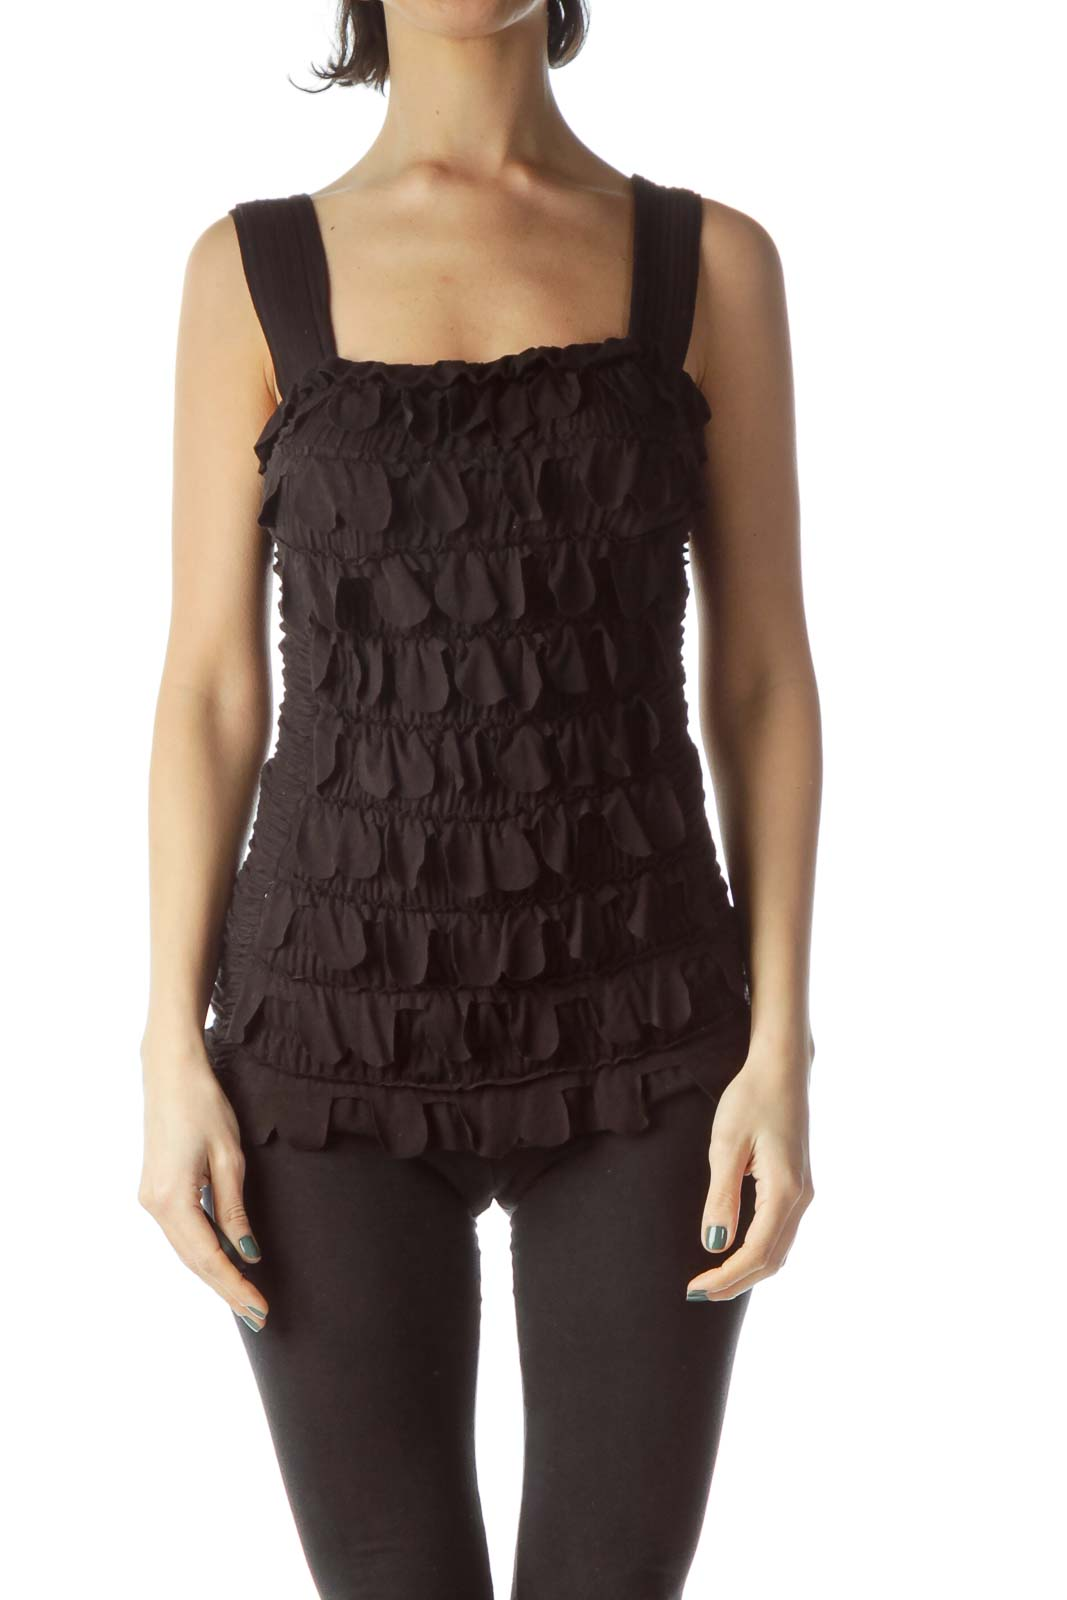 Black Sleeveless Scrunched Ruffled Body Top Front